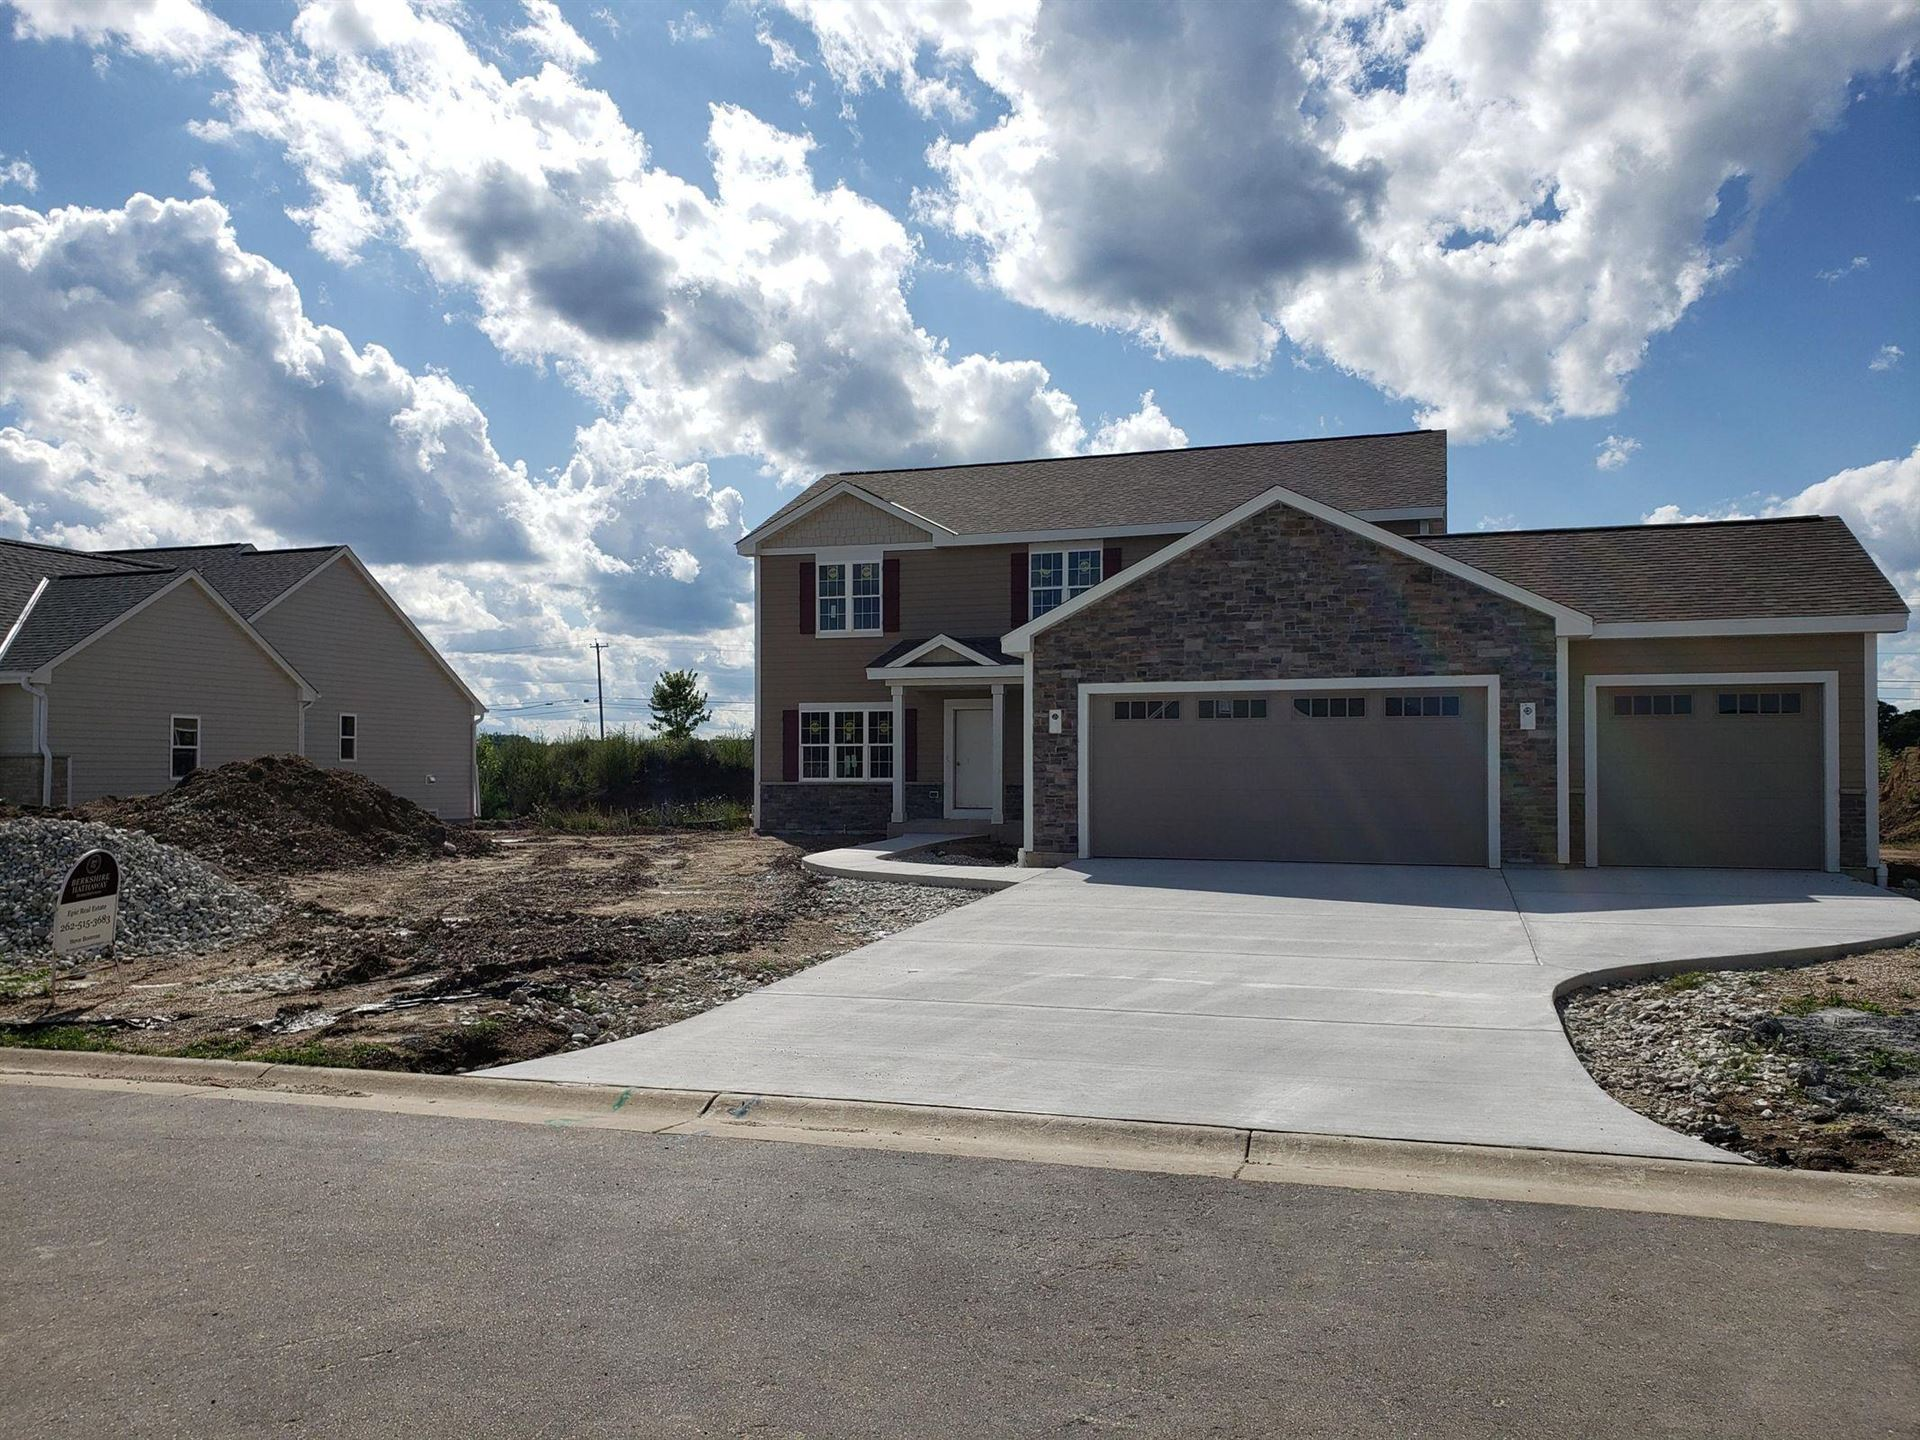 772 21st Ave, Somers, WI 53140 - #: 1717900